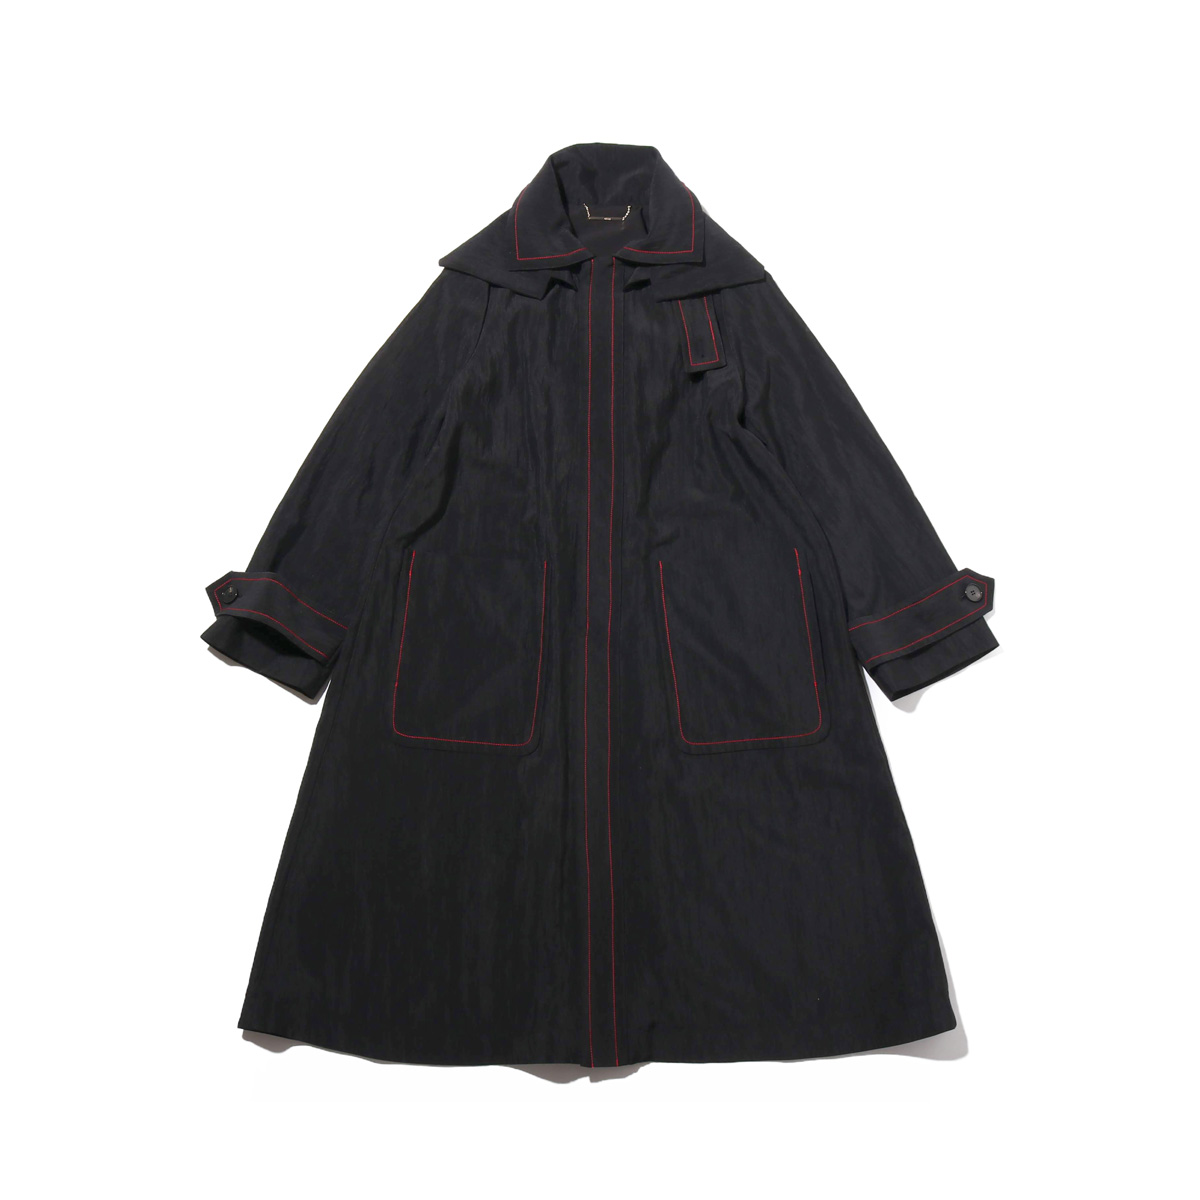 atmos pink 配色ステッチ ロングコート(アトモスピンク ハイショクステッチ ロングコート)BLACK【レディース コート】18FW-I